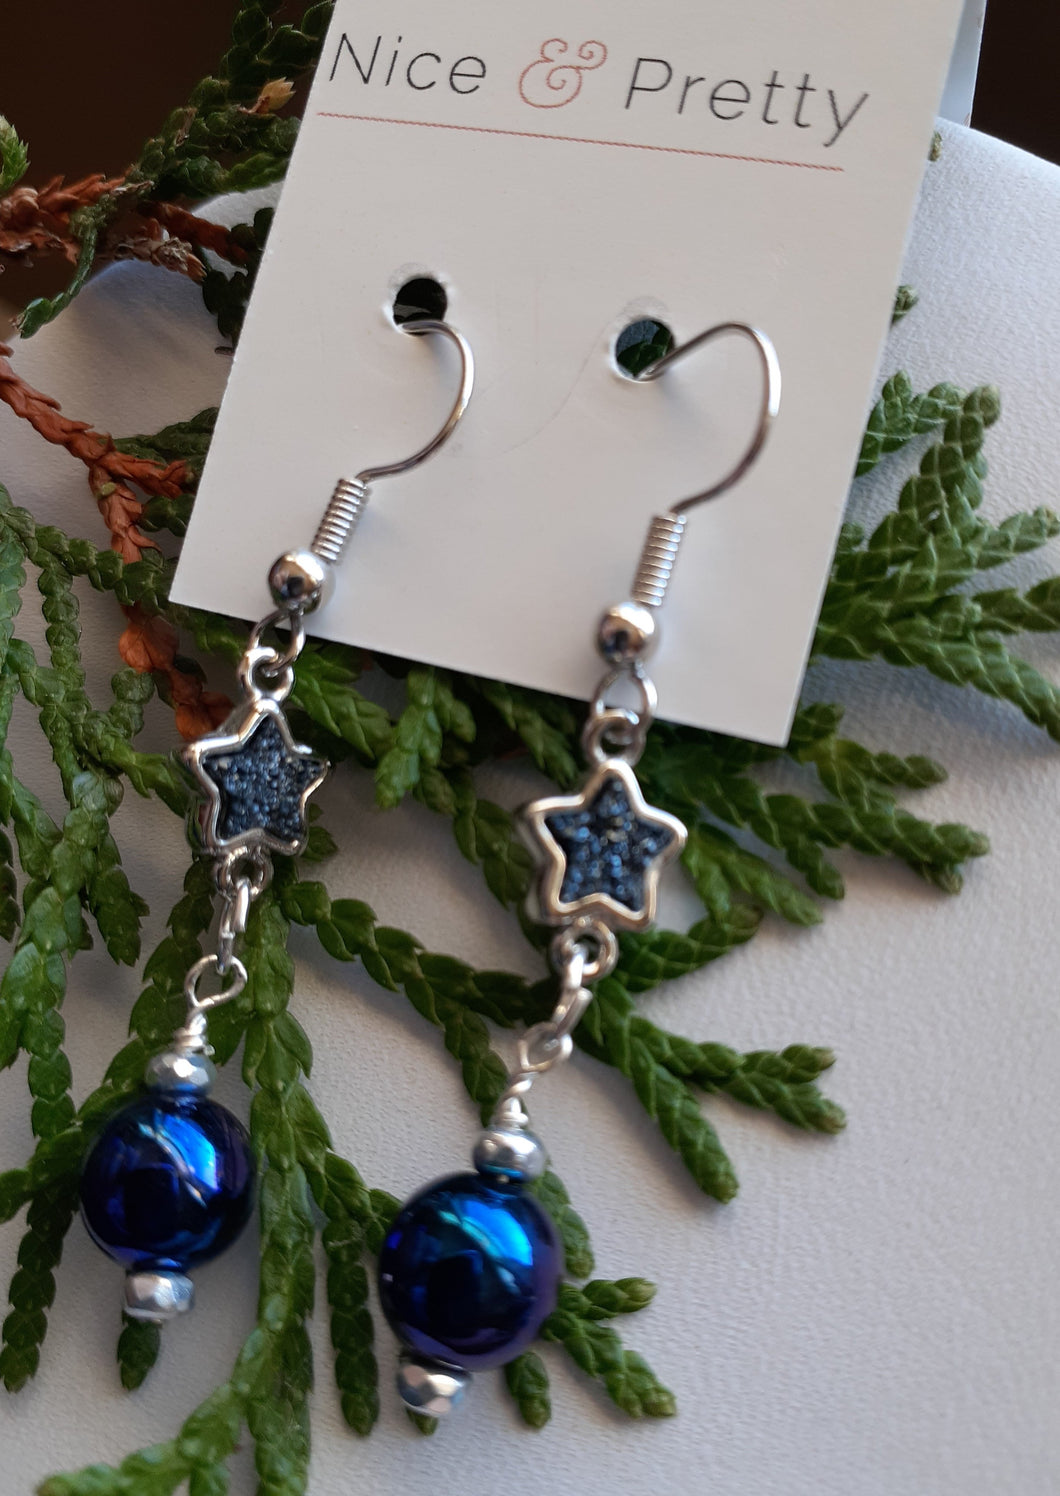 blue druzy star earrings. nice and pretty jewelry